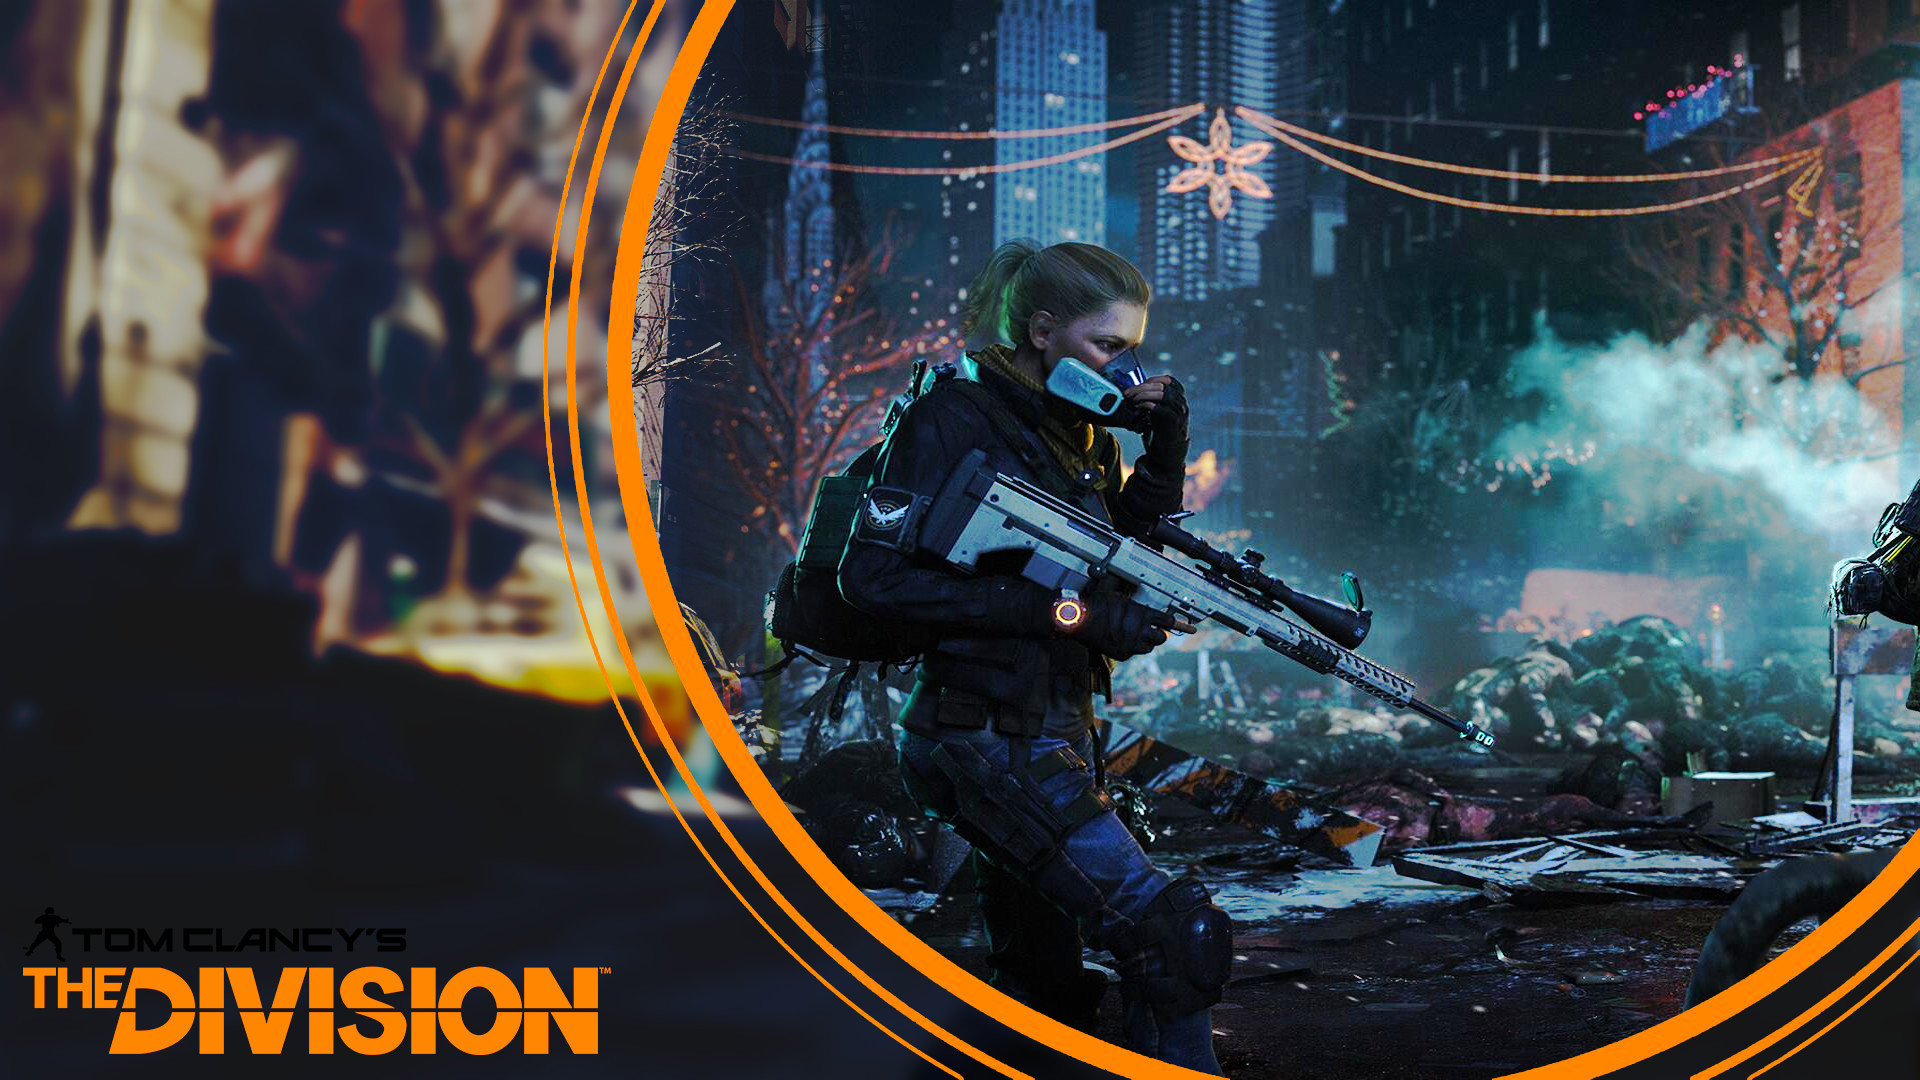 The Division Desktop Wallpaper by Xxplosions The Division Desktop Wallpaper  by Xxplosions